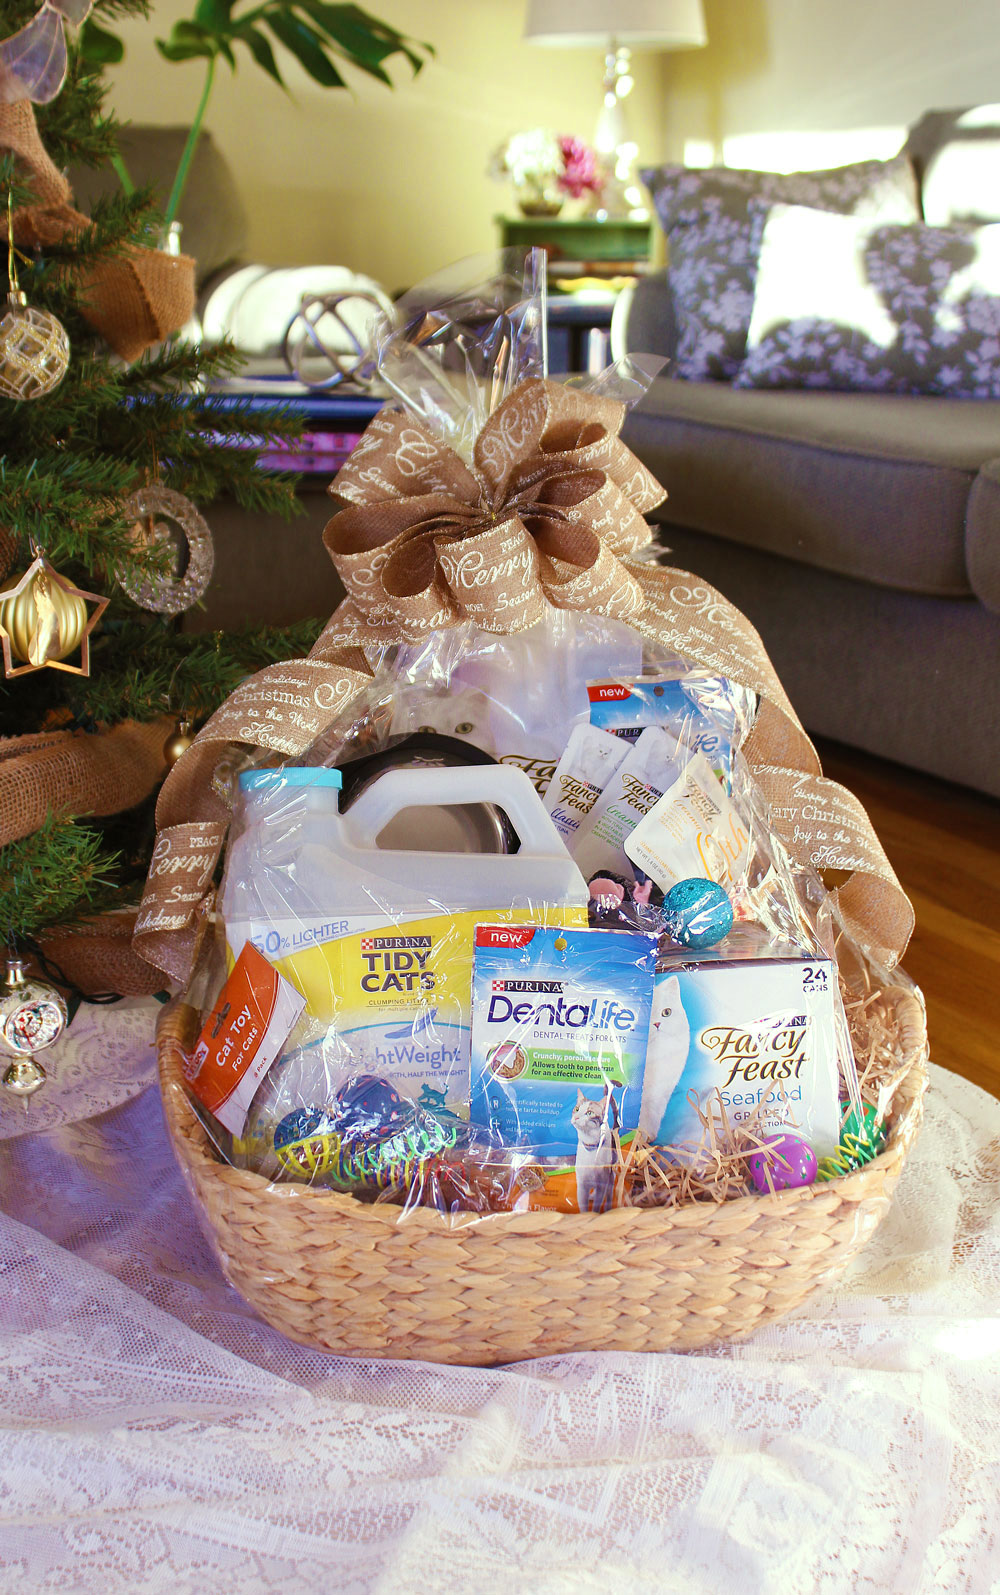 365 Designs Pet Gift Basket With Personalized All Natural Diy Air